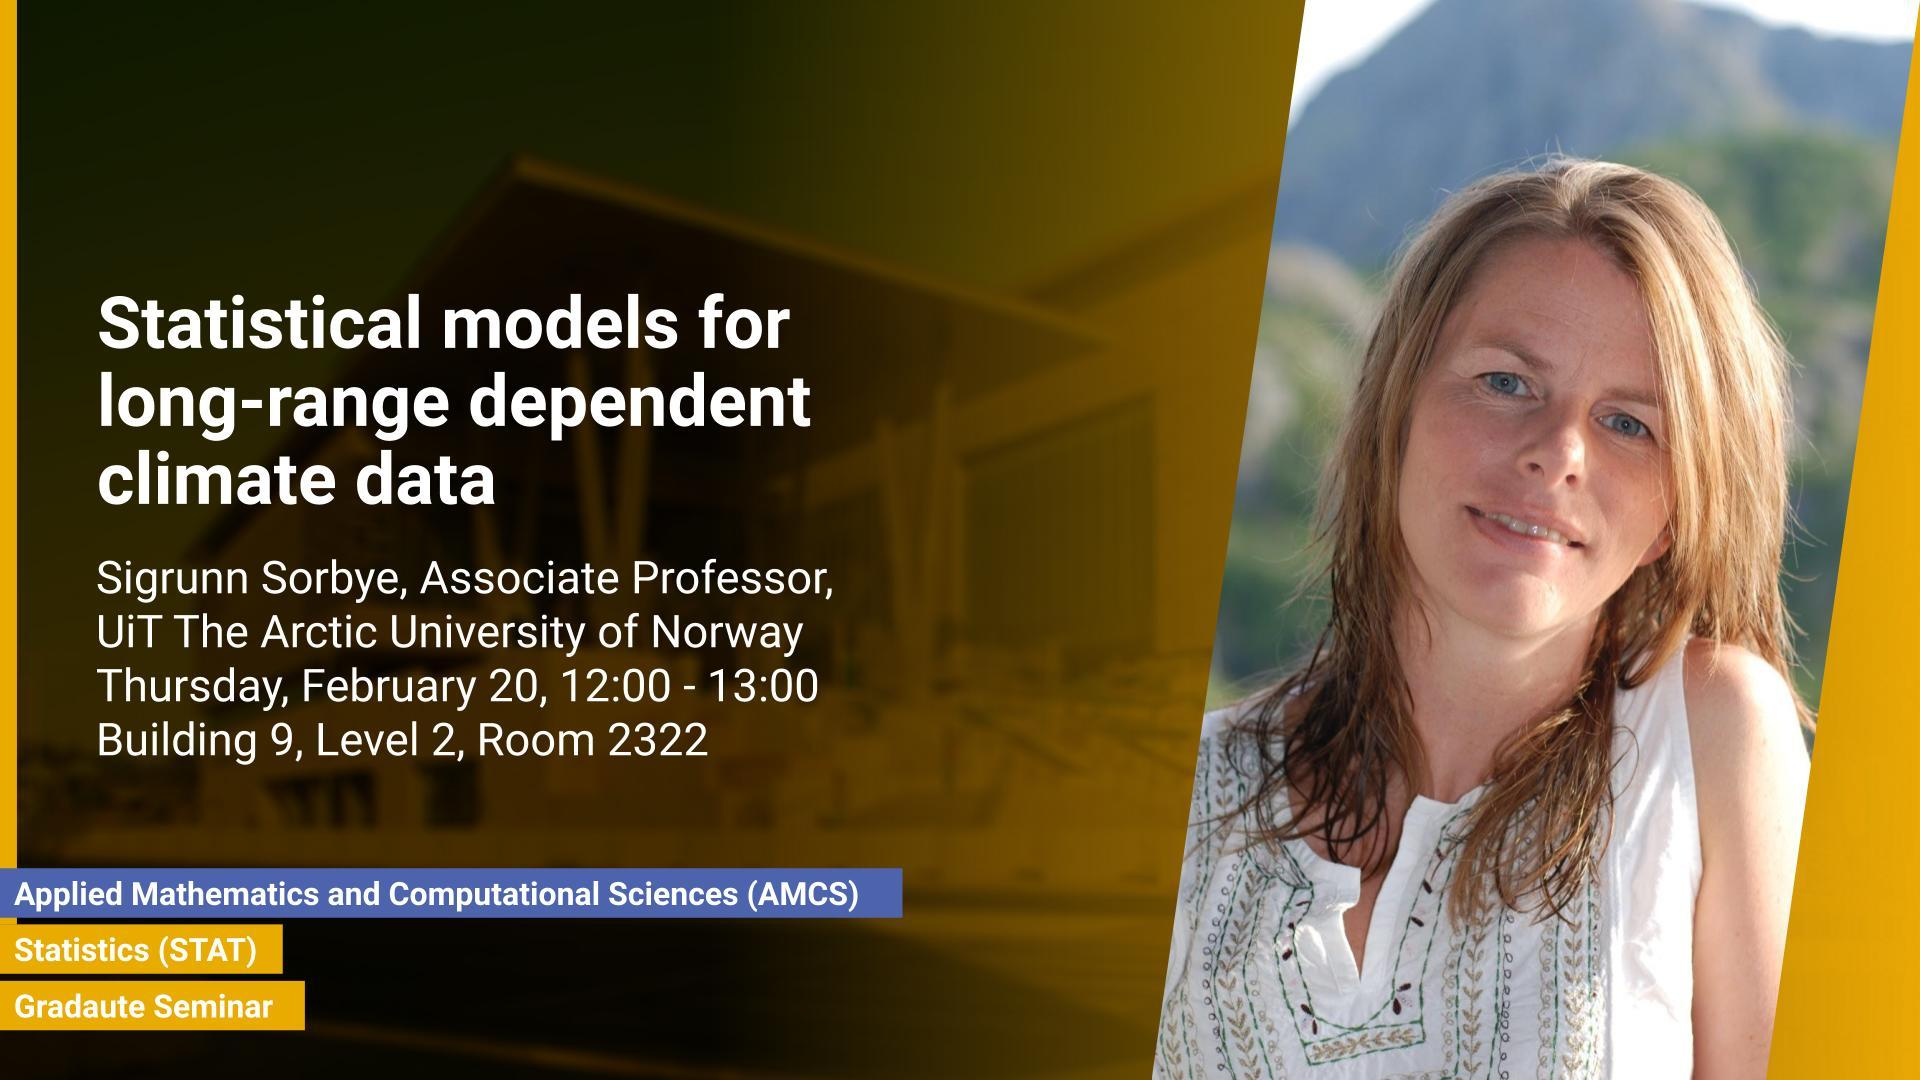 KAUST CEMSE AMCS STAT Graduate Seminar Sigrunn Sorbye Statistical models for long range dependent climate data